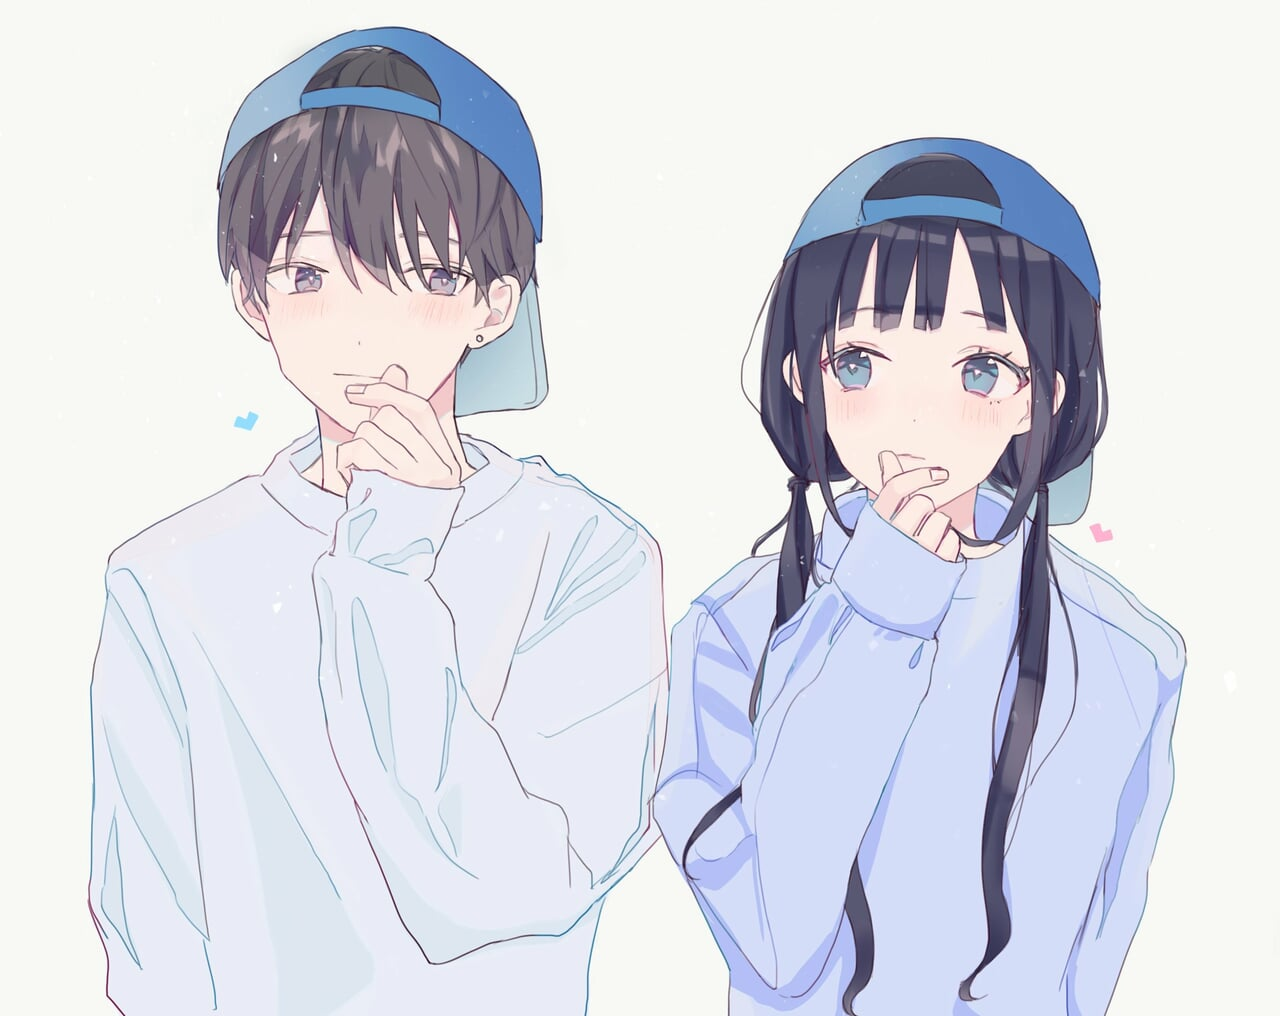 1000 Images About Anime Couple On We Heart It See More About Anime Couple And Cute